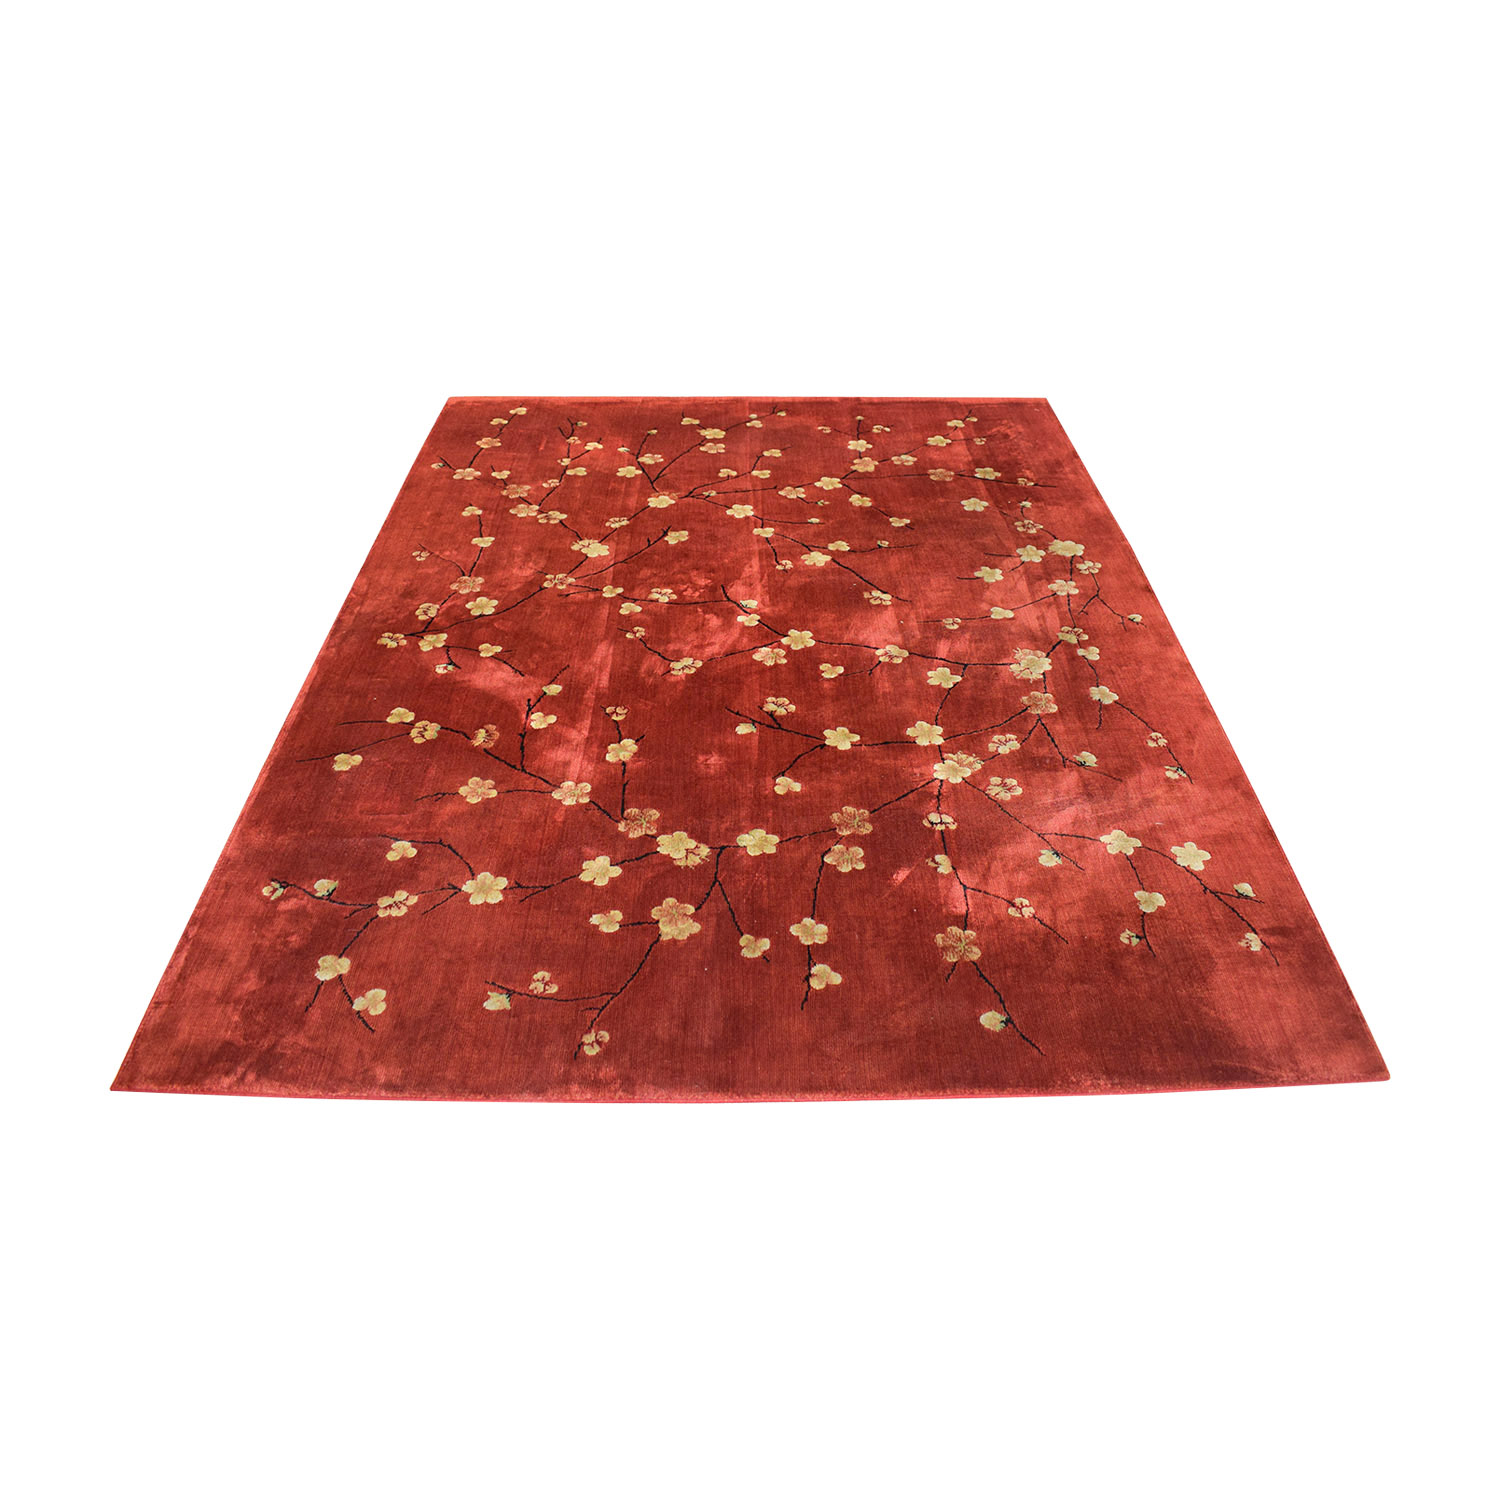 Macy's Macy's Chambord Red Floral Rug